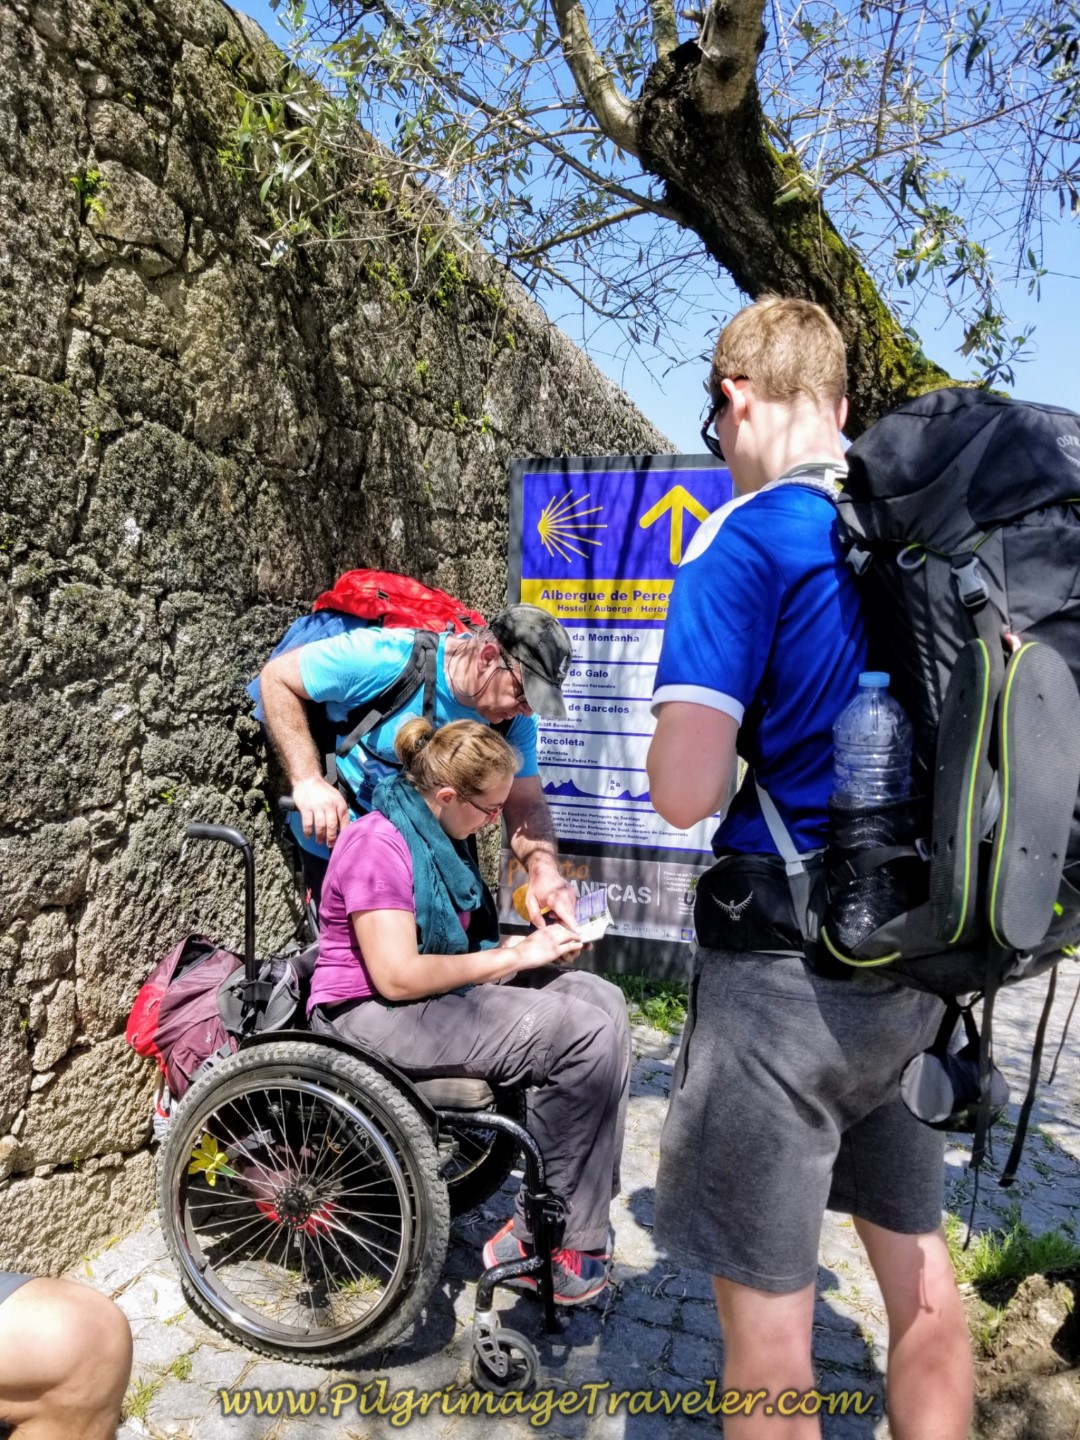 Pedro, Magdalena and Magnus conferring with the map in Pedra Furada on day sixteen on the Central Route of the Portuguese Way